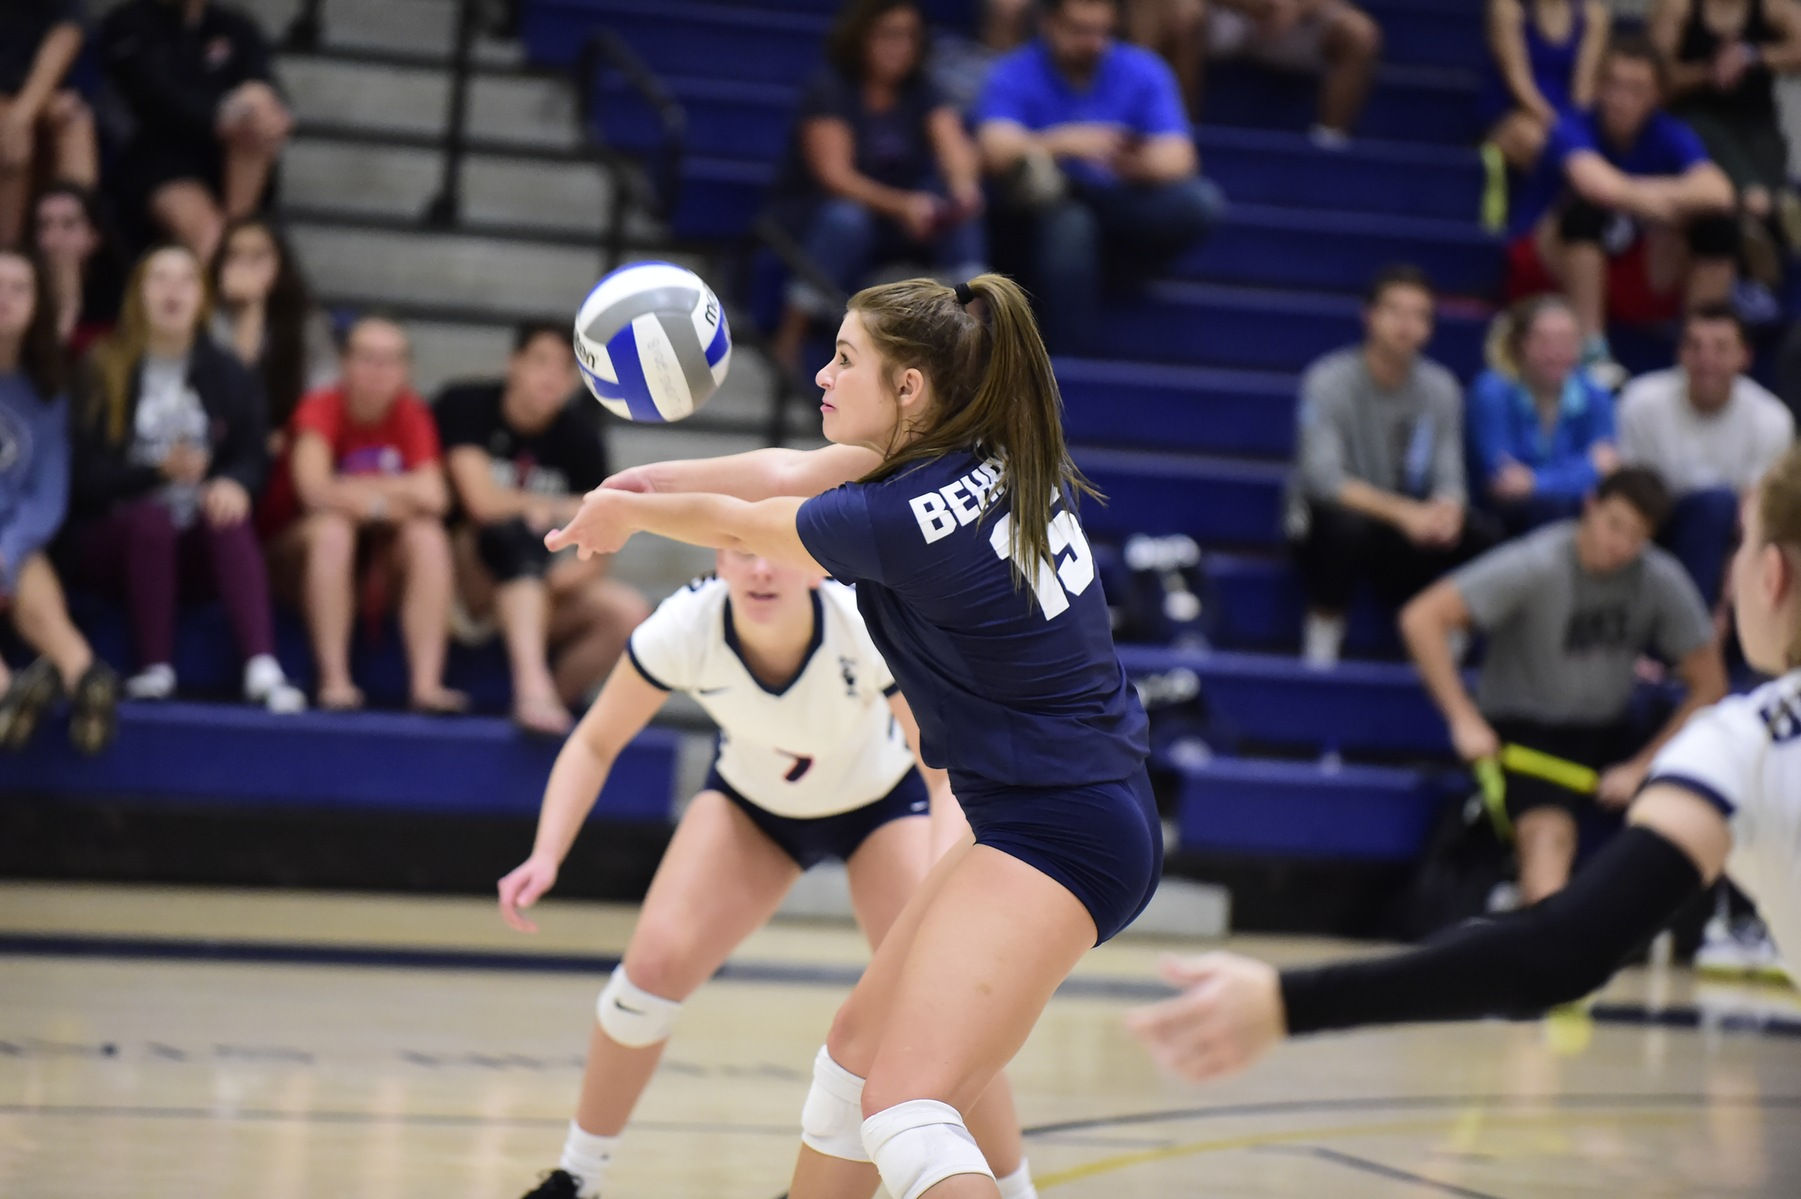 Women's Volleyball Defeats Wilkes in Three; Lions Advance to ECAC Quarterfinals